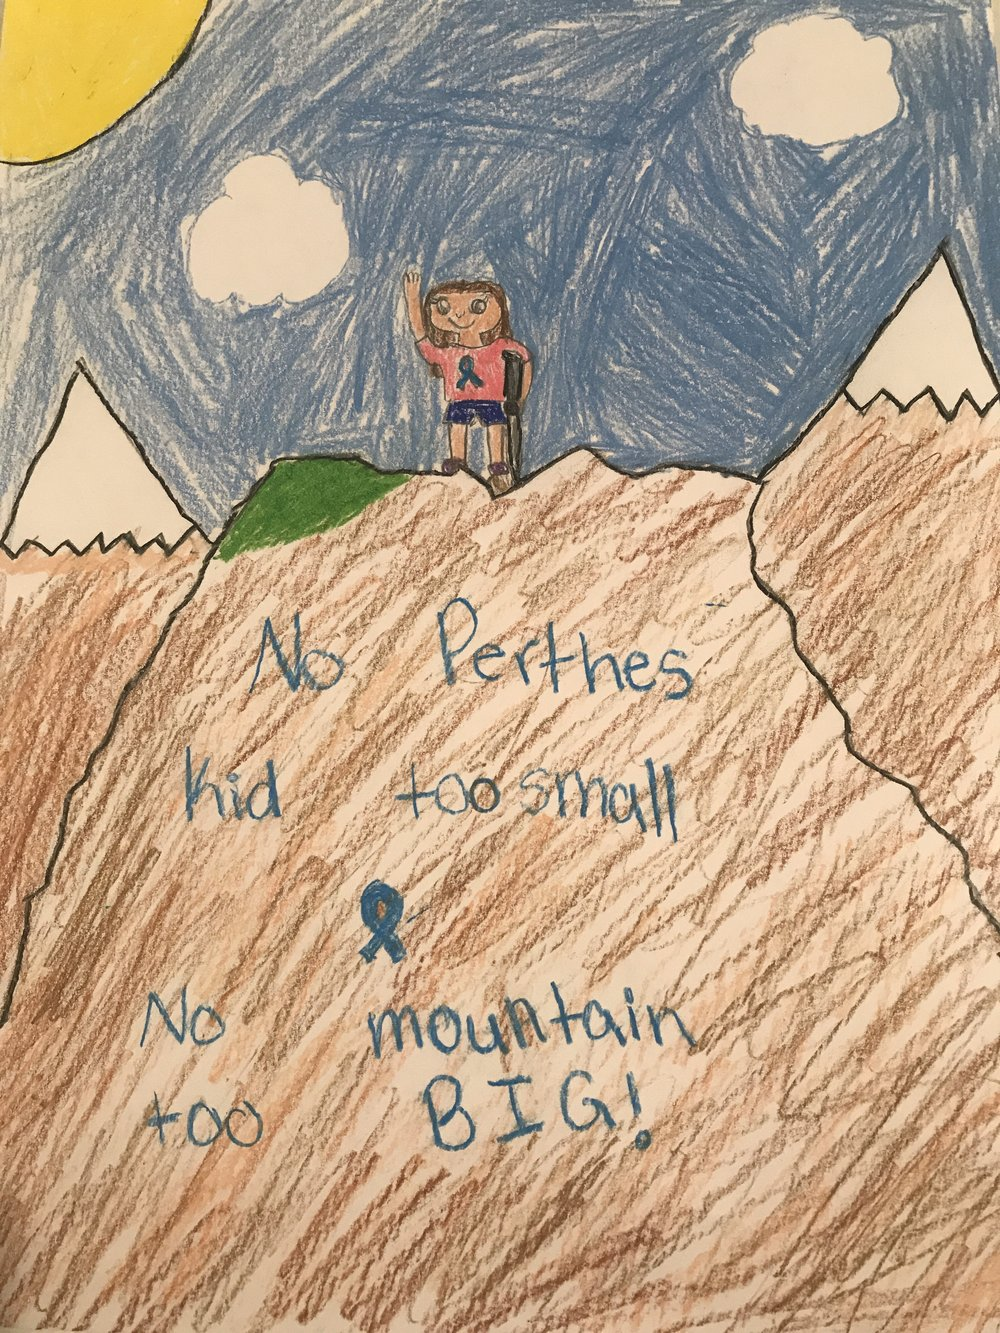 024 - PERTHES MOUNTAIN by Addison Rogers (age 11) from Altoona, Iowa, USA